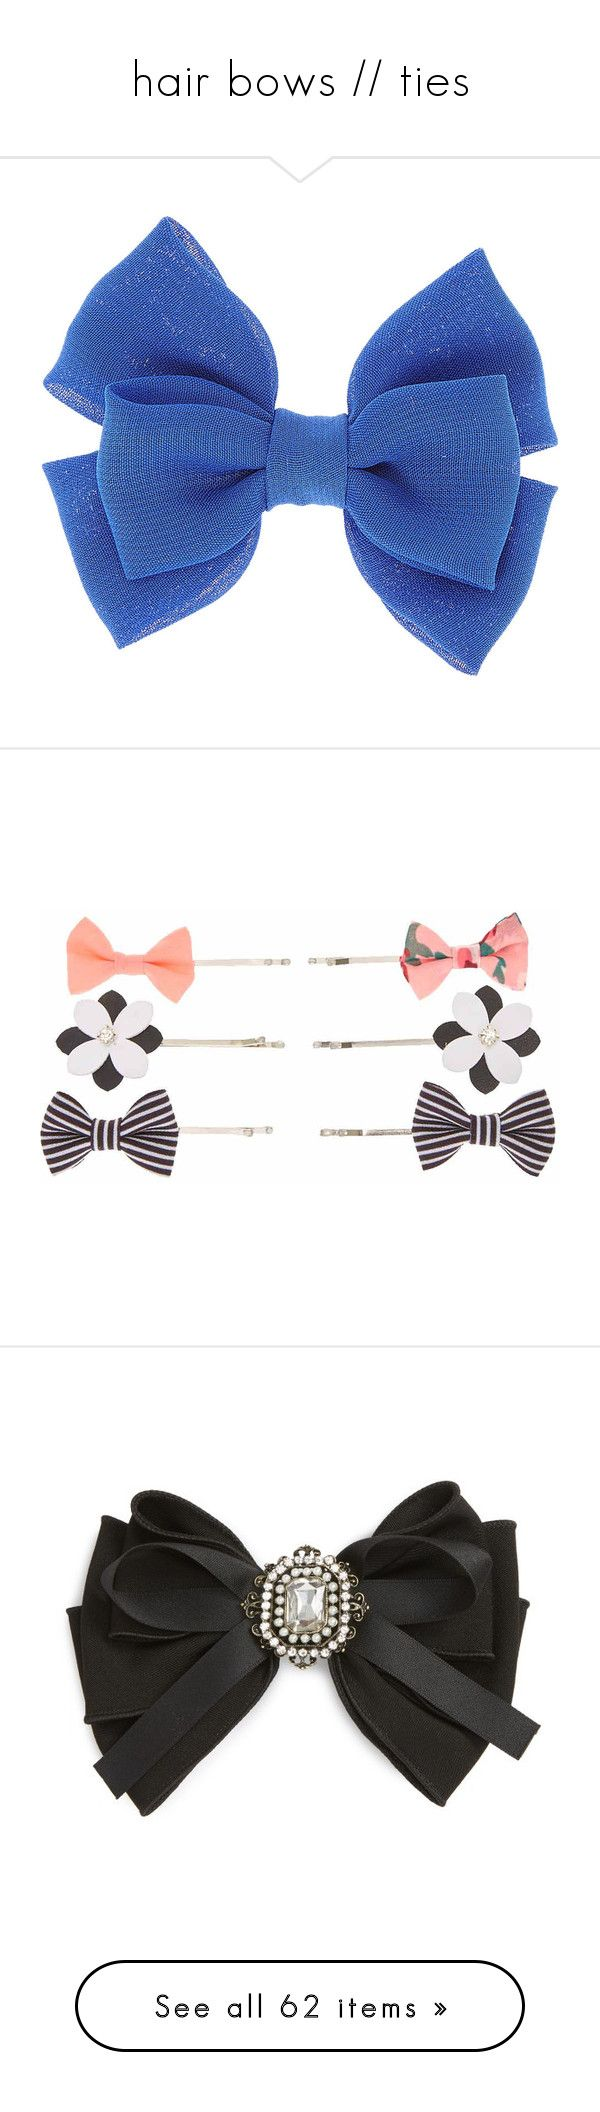 """""""hair bows // ties"""" by cecilialukas on Polyvore featuring accessories, hair accessories, royal blue hair accessories, hair bows, royal blue hair bow, chiffon hair bows, bow hair accessories, floral hair pins, bobby hair pins and floral hair accessories"""